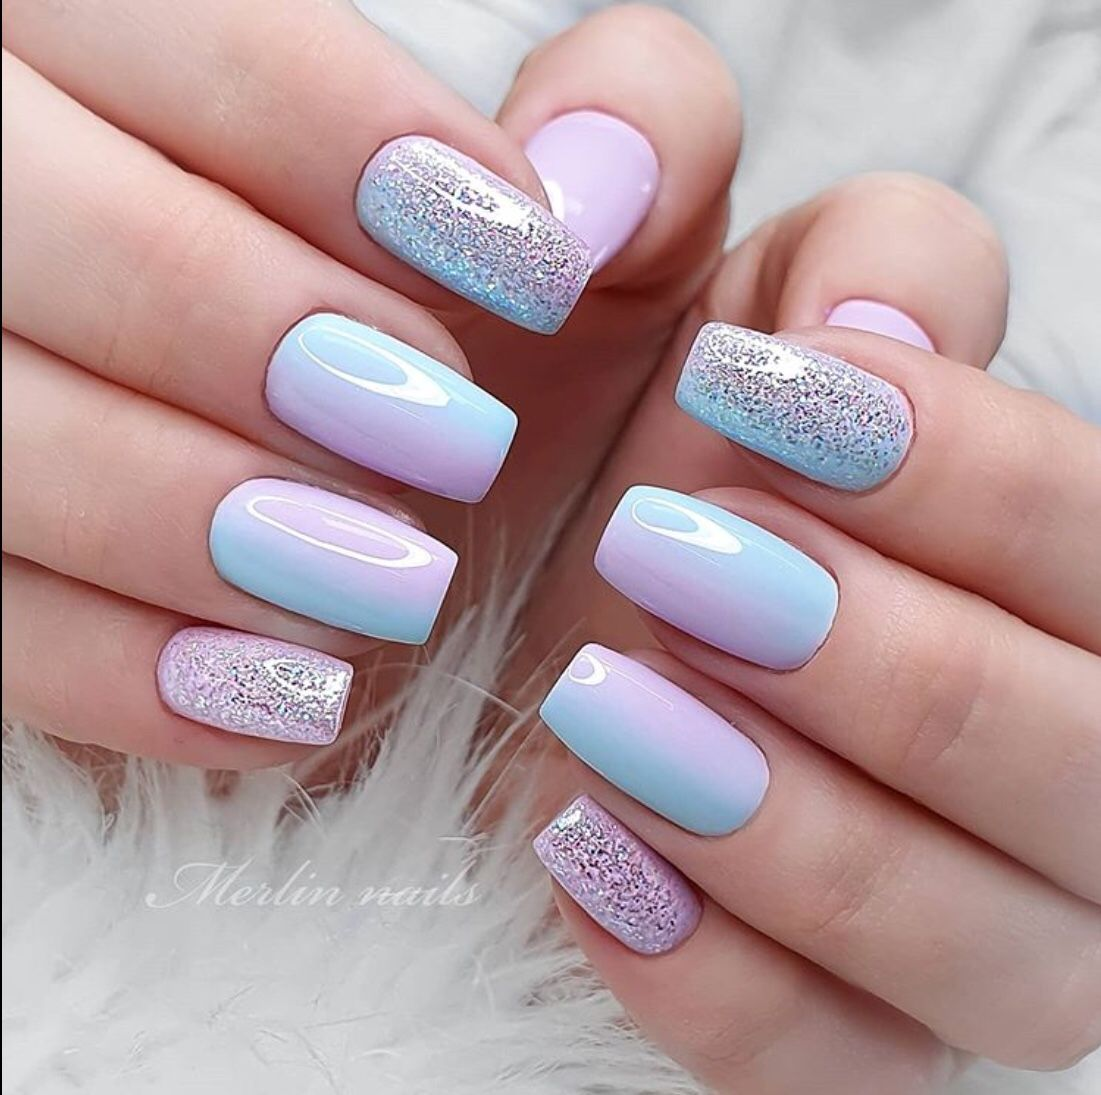 40+ Beautiful Wedding Nail Designs For Modern Brides - The ...